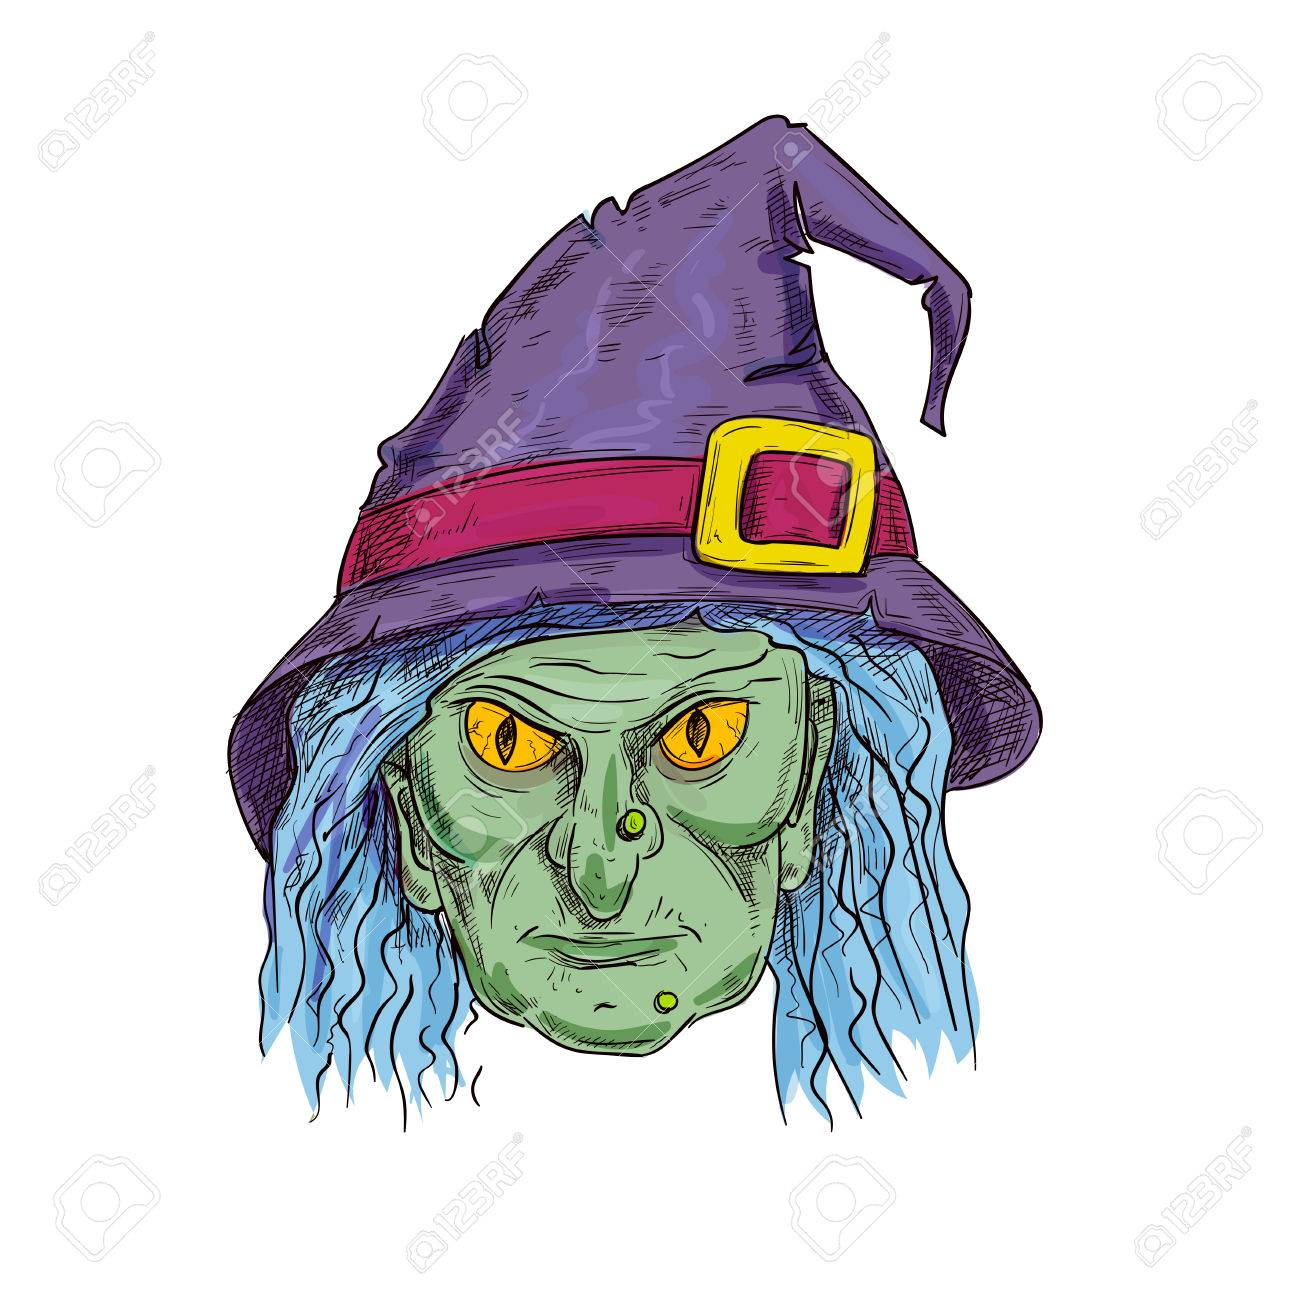 Halloween Cartoon Witch Face.Old Witch With Ugly Face In Purple Sorcerer Hat And Blue Hair